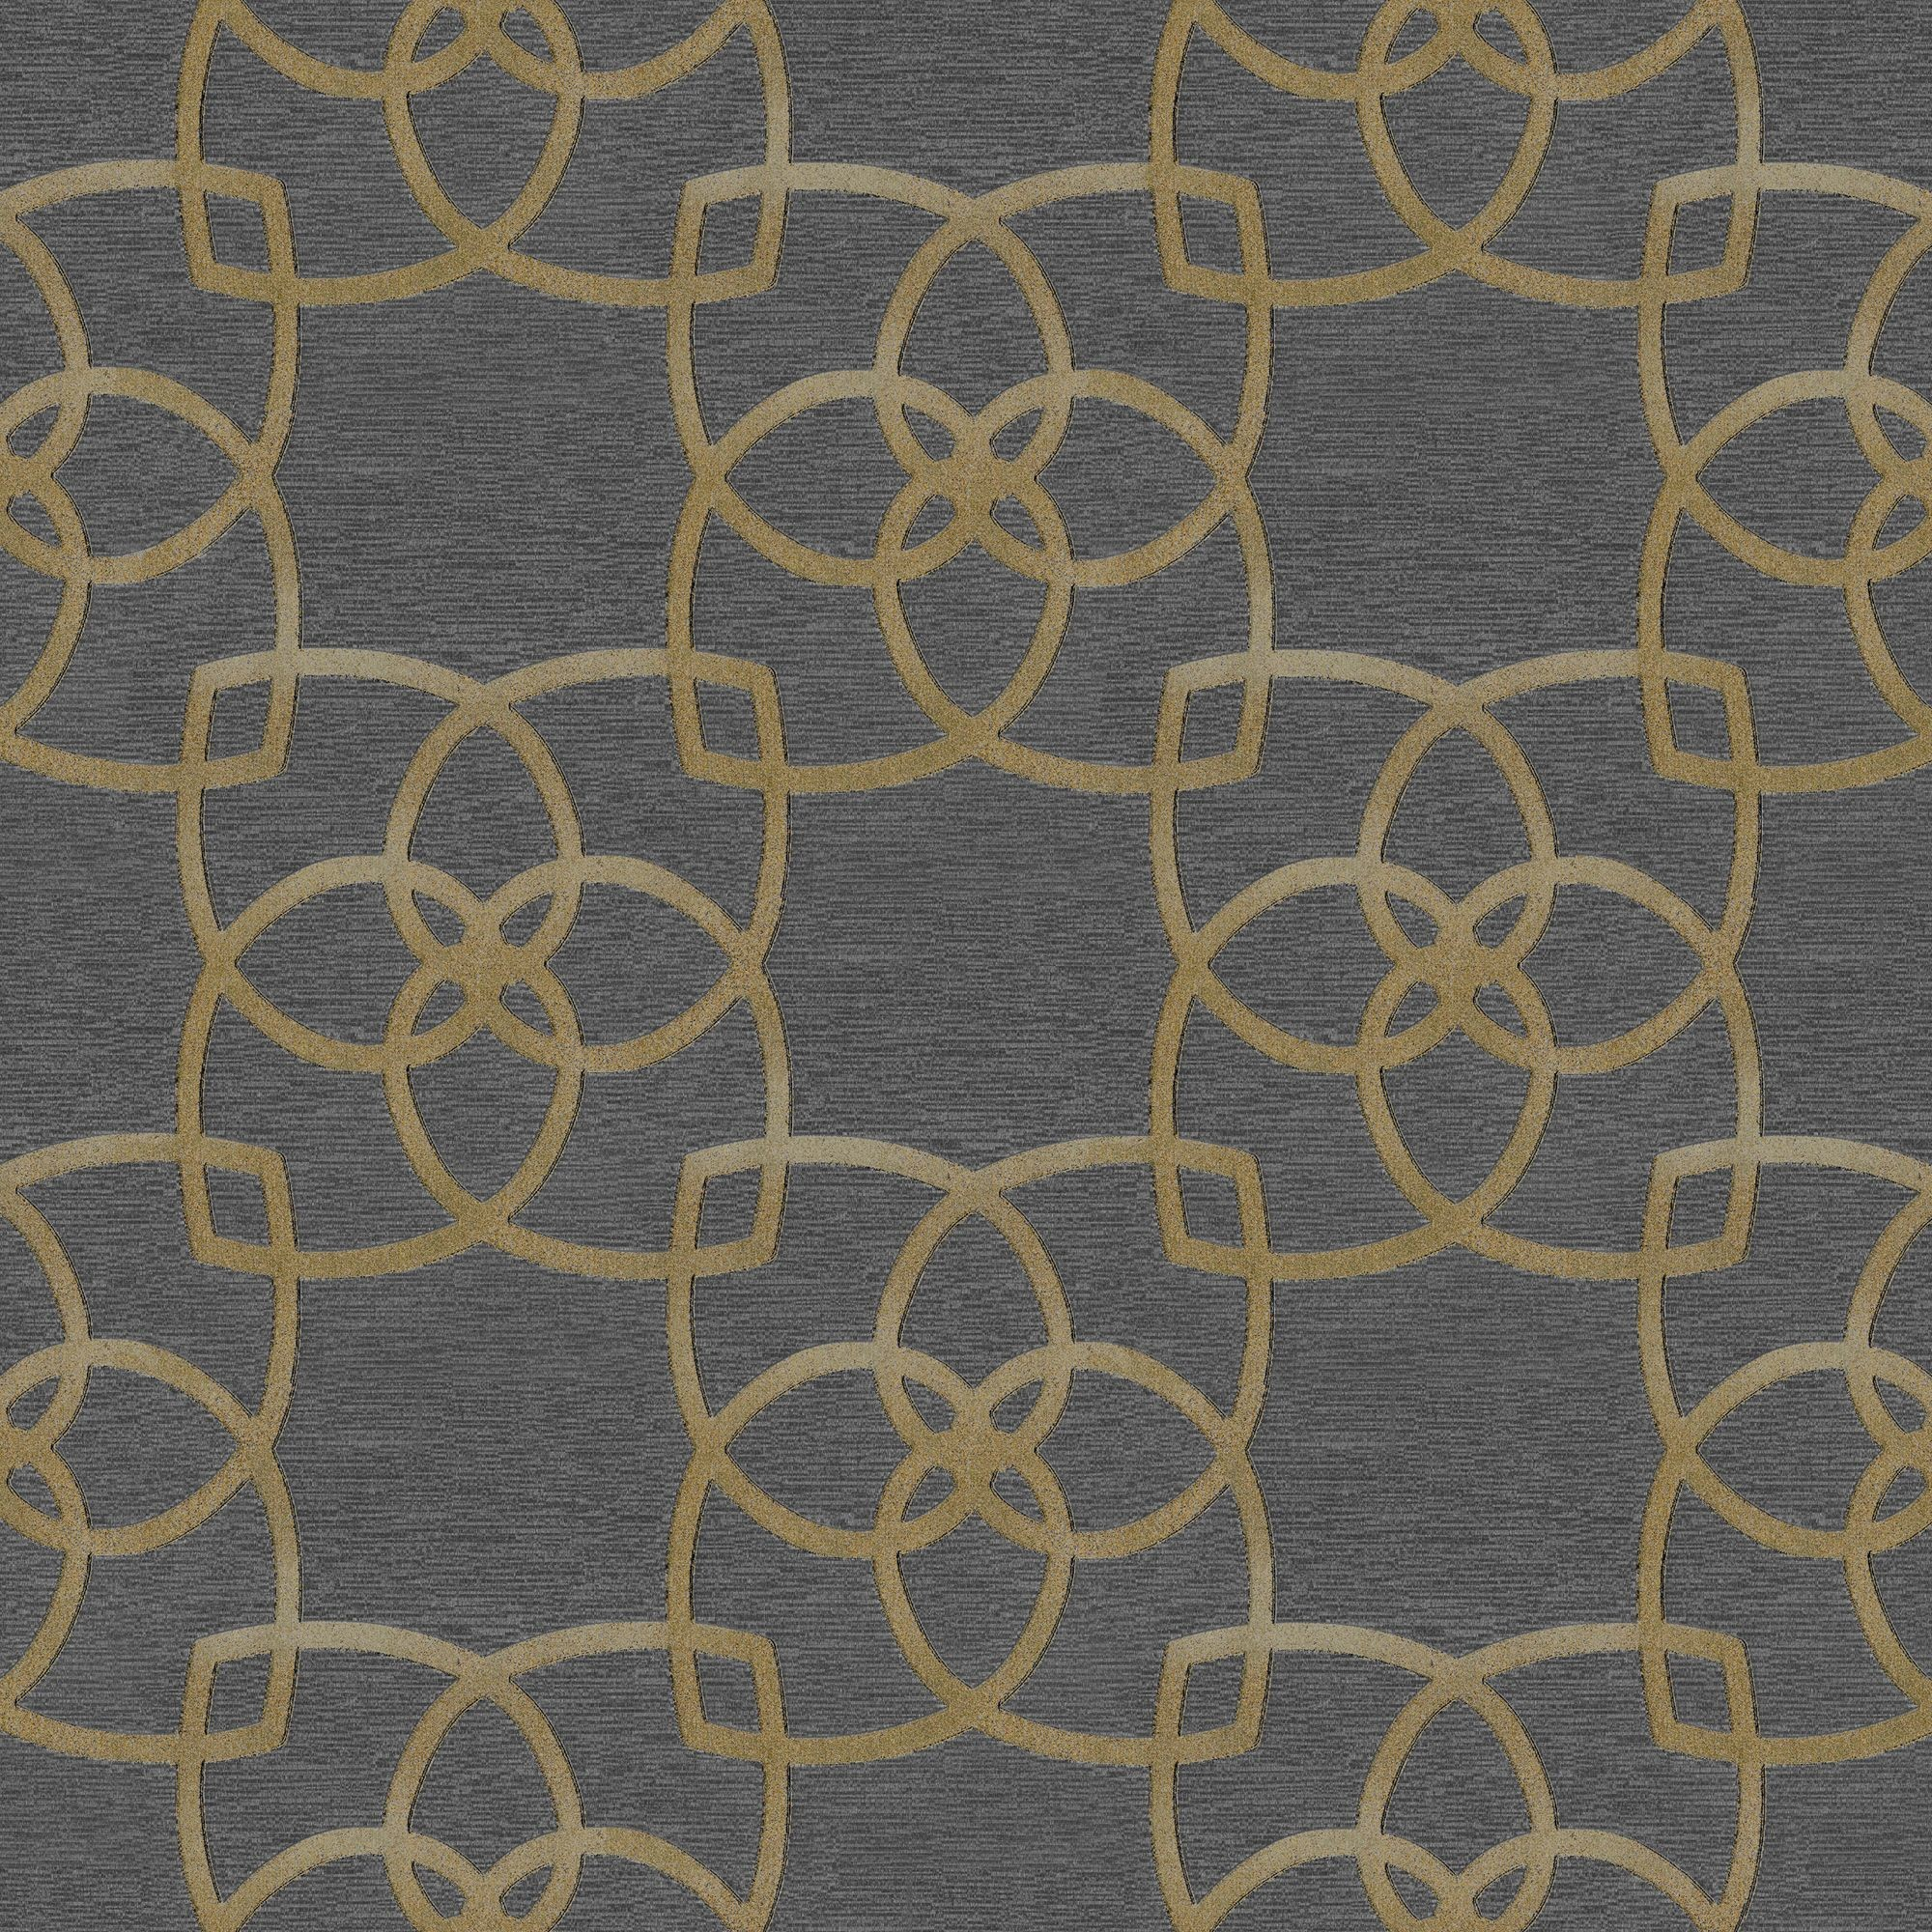 Muriva Precious Silks Warm Gold & Silver Geometric Metallic Wallpaper